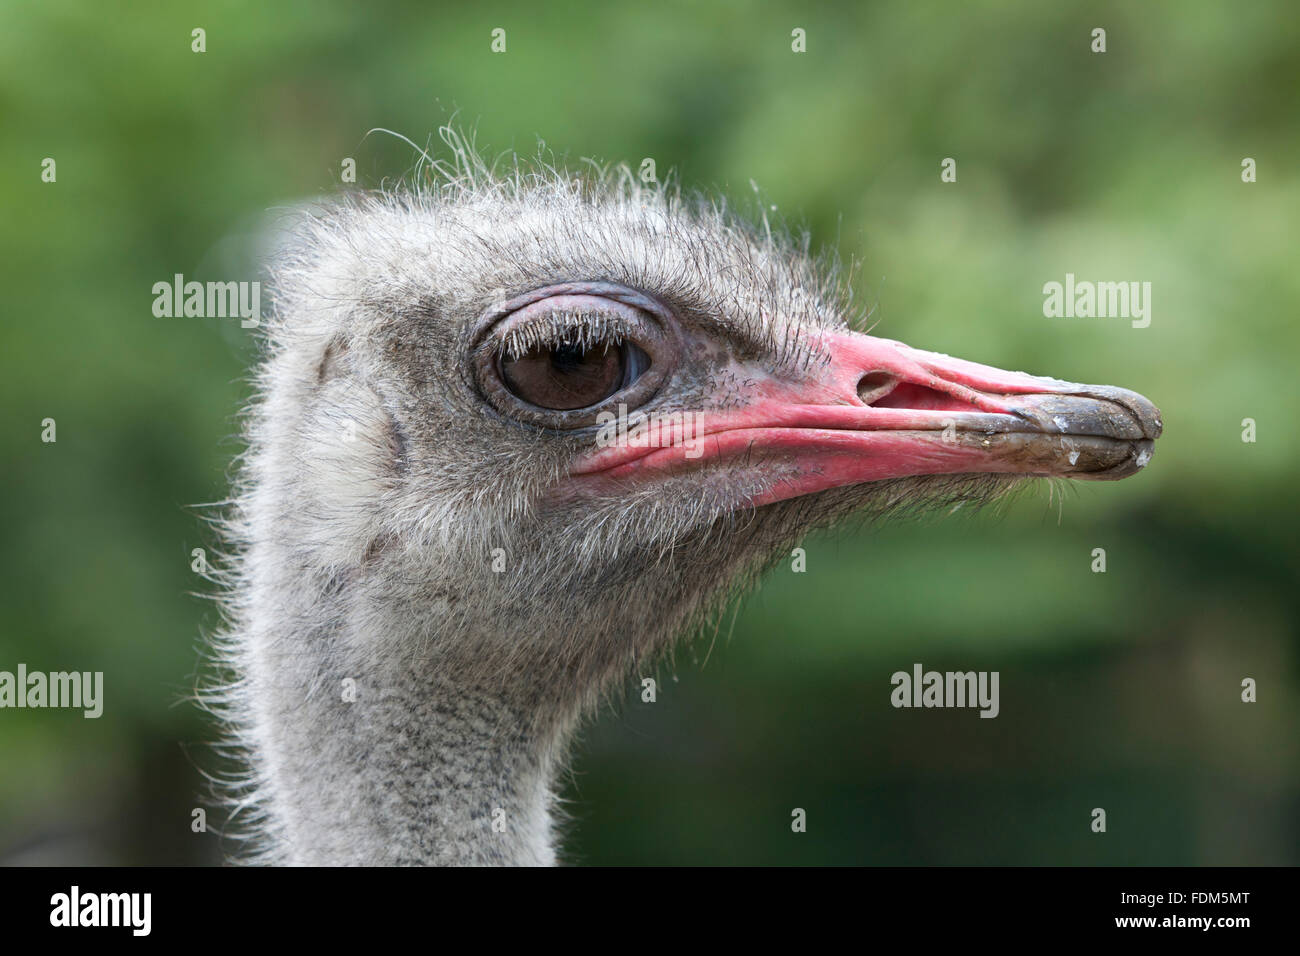 Ostrich head en profil close up - Stock Image